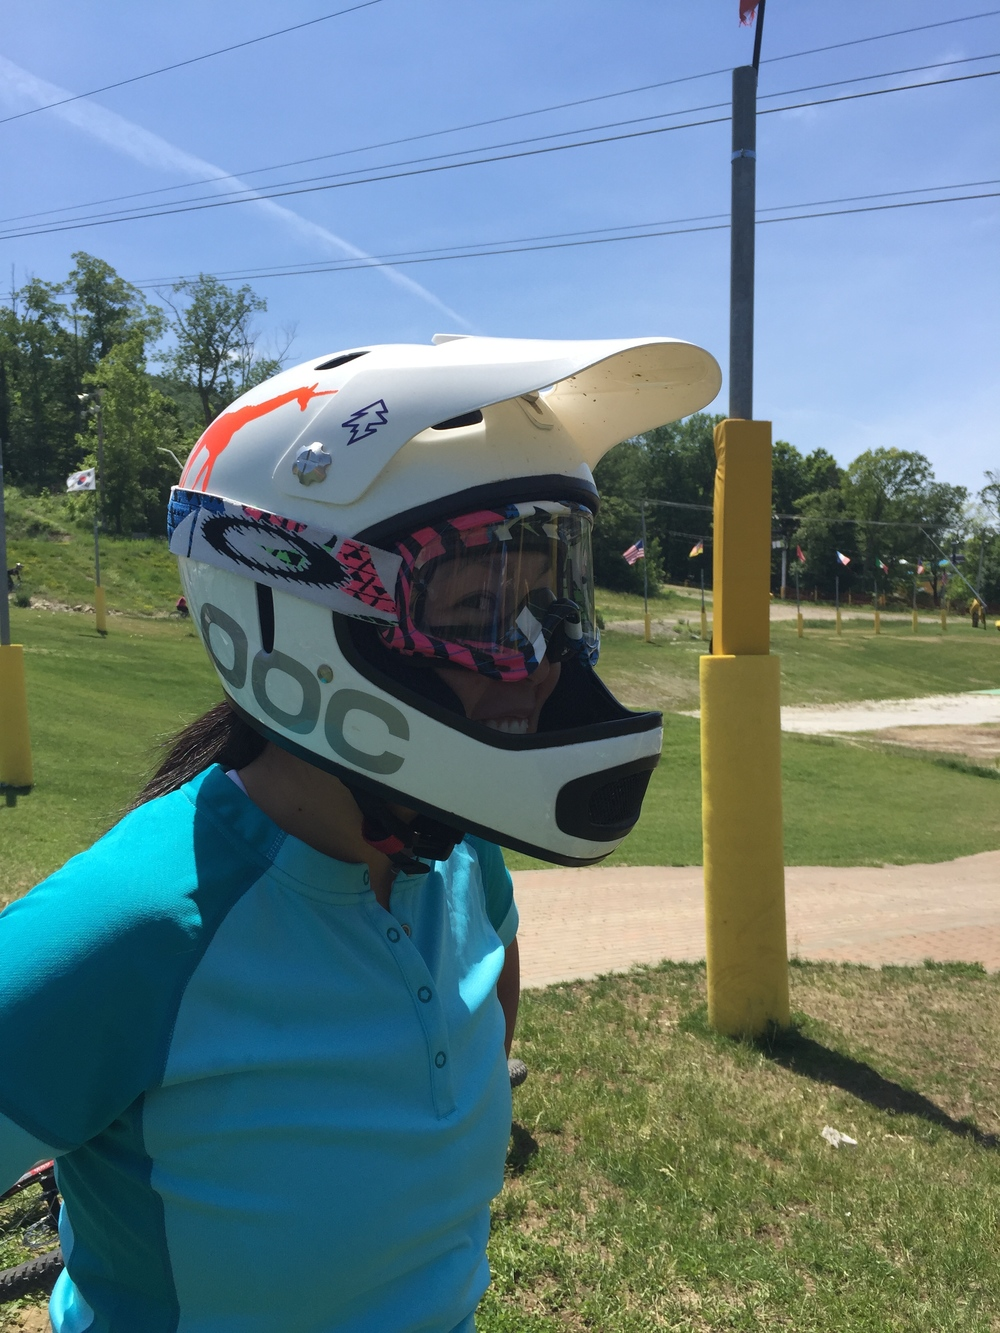 FYI roadies, youre probably gonna new some new gear! Lucia models a downhill helmet.